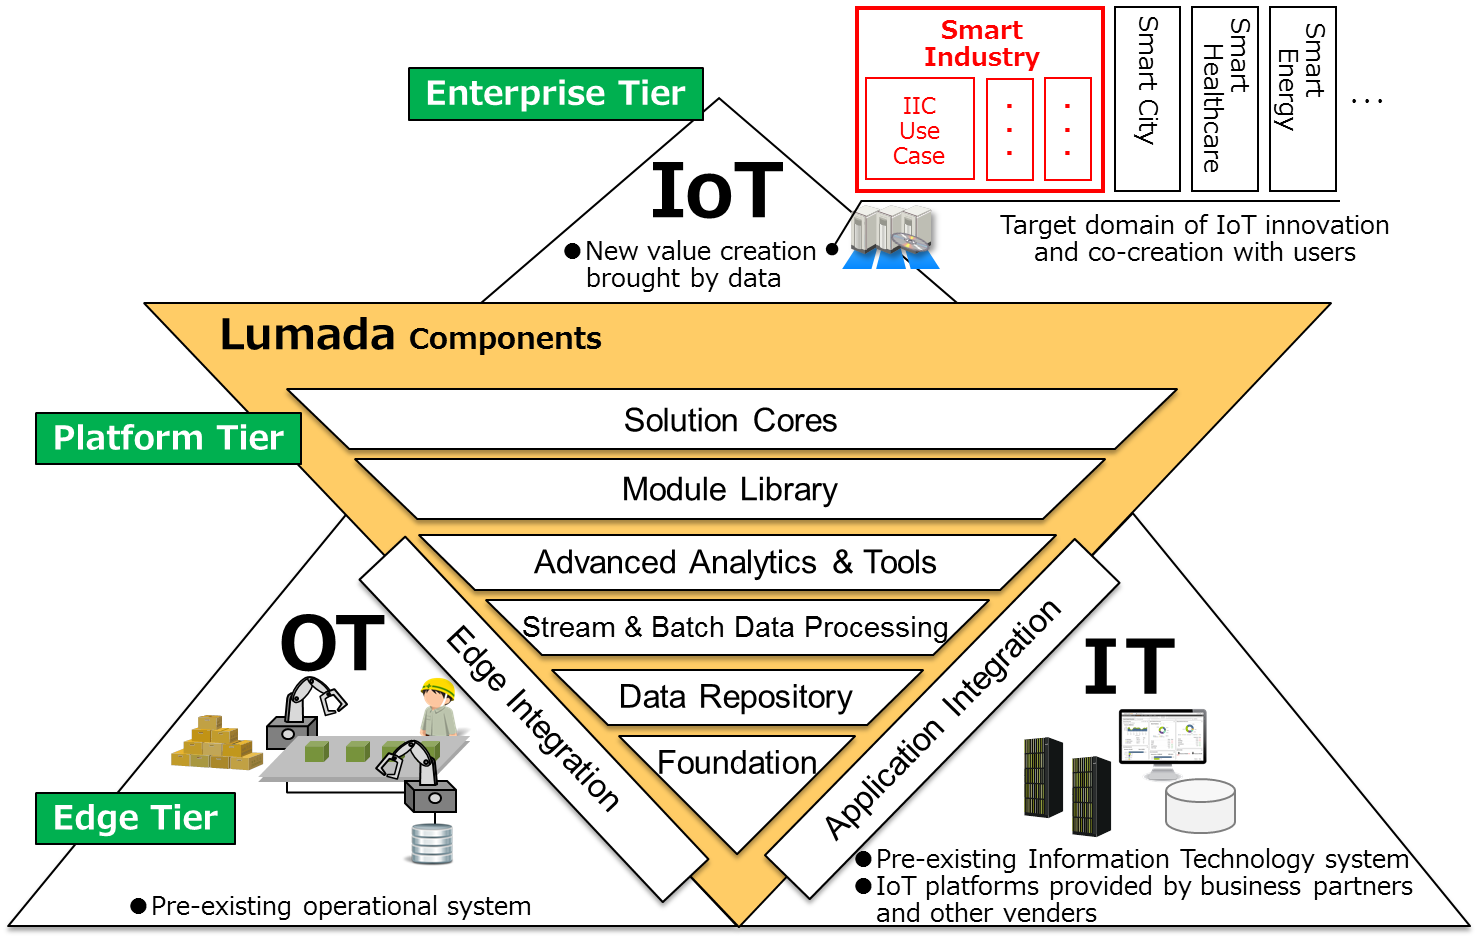 Positioning of IIC Testbed in Lumada